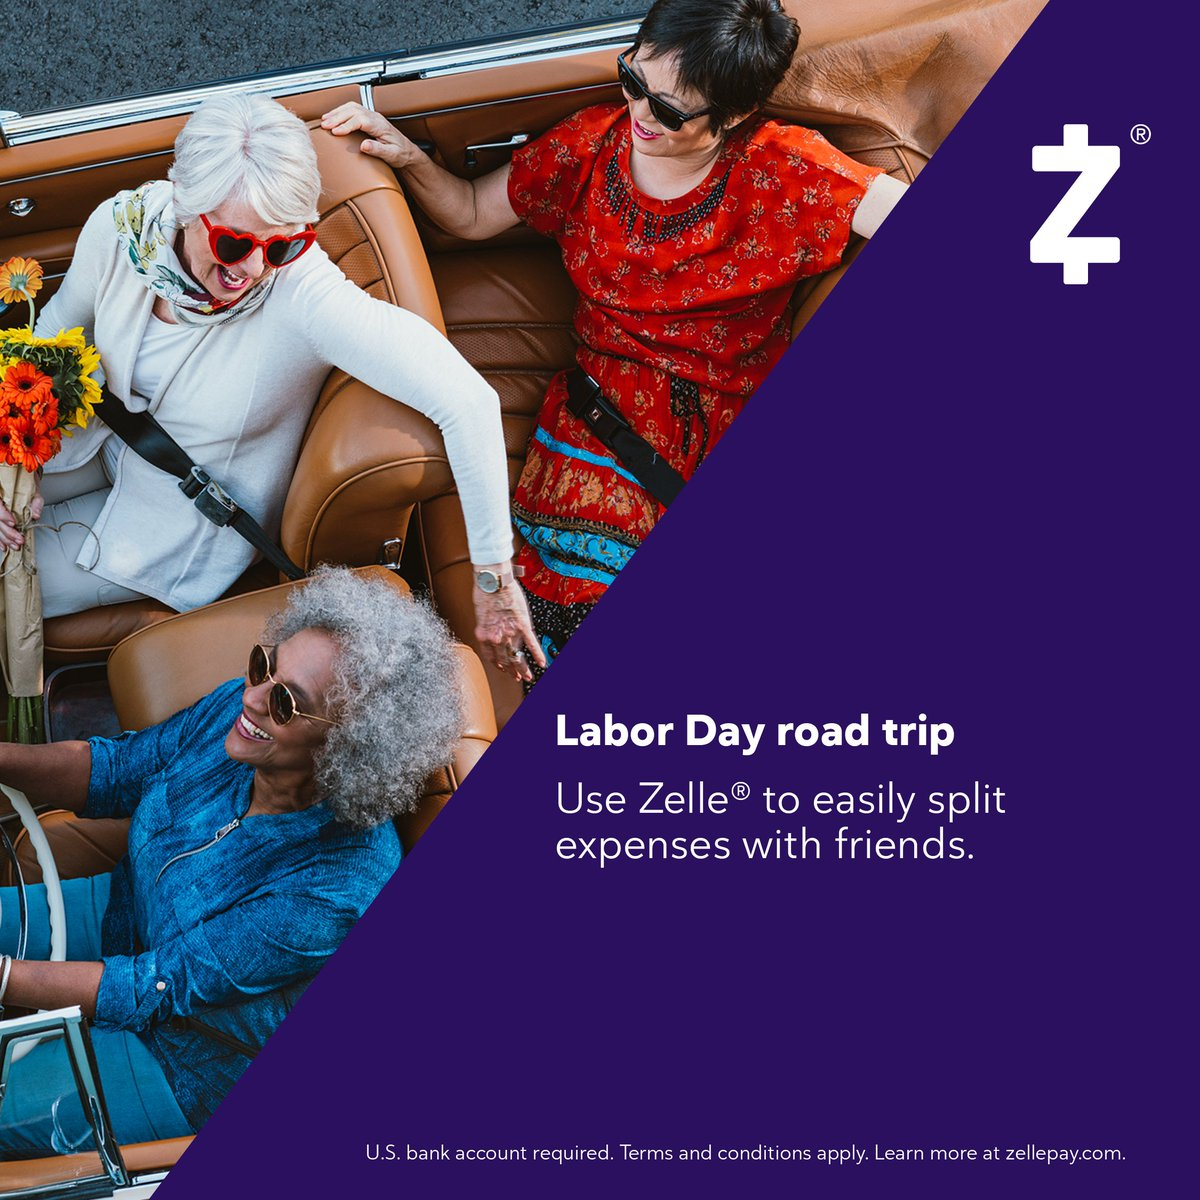 Getting out of town this Labor Day weekend? 🚙⛽🍕 #LaborDay #RoadTrip #SendWithZelle bddy.me/38T0nqd